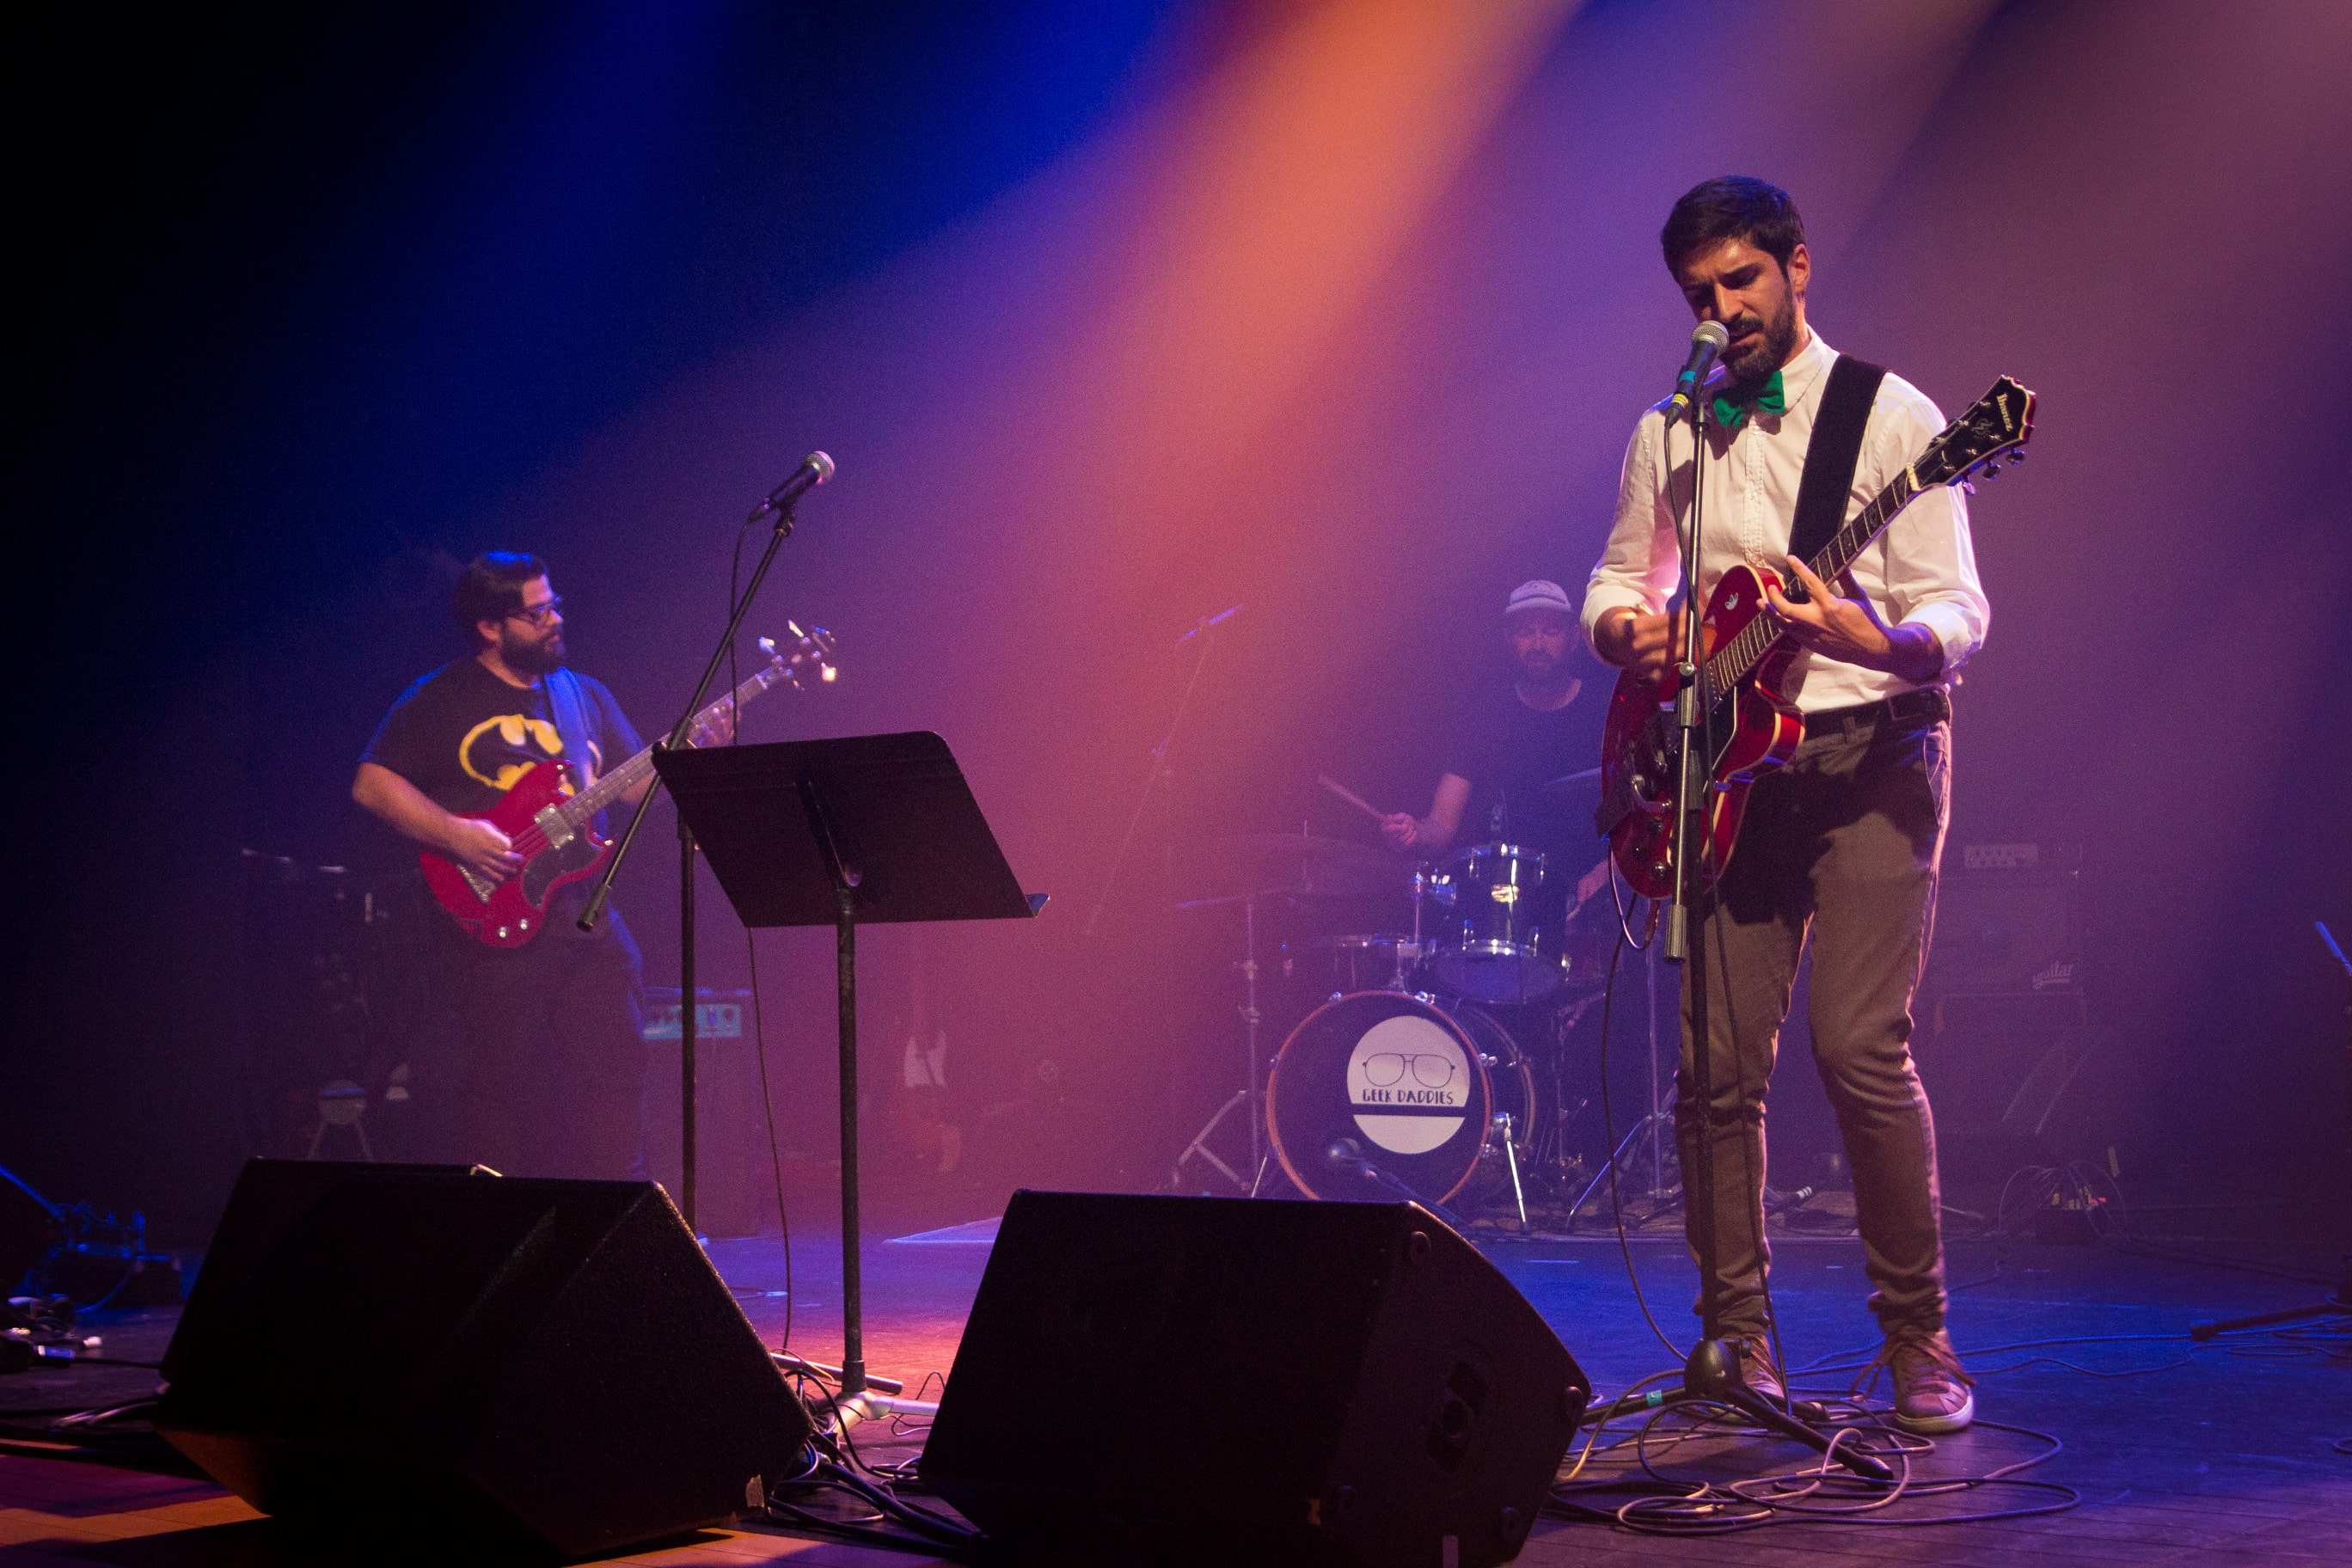 Geek Daddies_clap your hands say fest 2019_ leiria_teatro josé lúcio_ til magazine